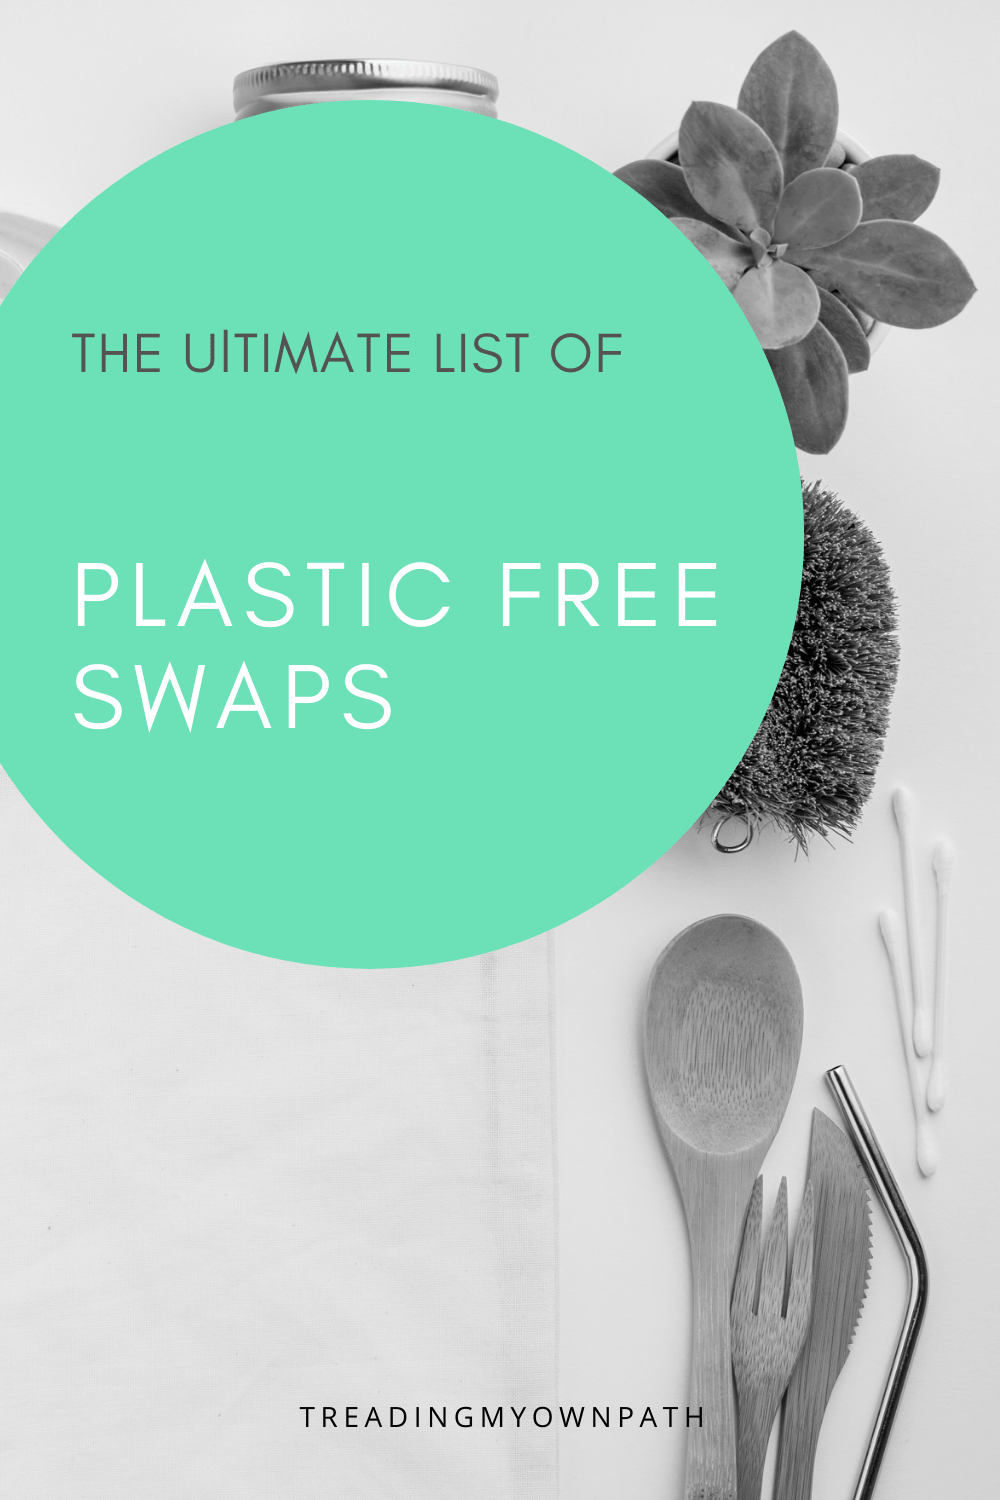 The ultimate list of plastic free swaps